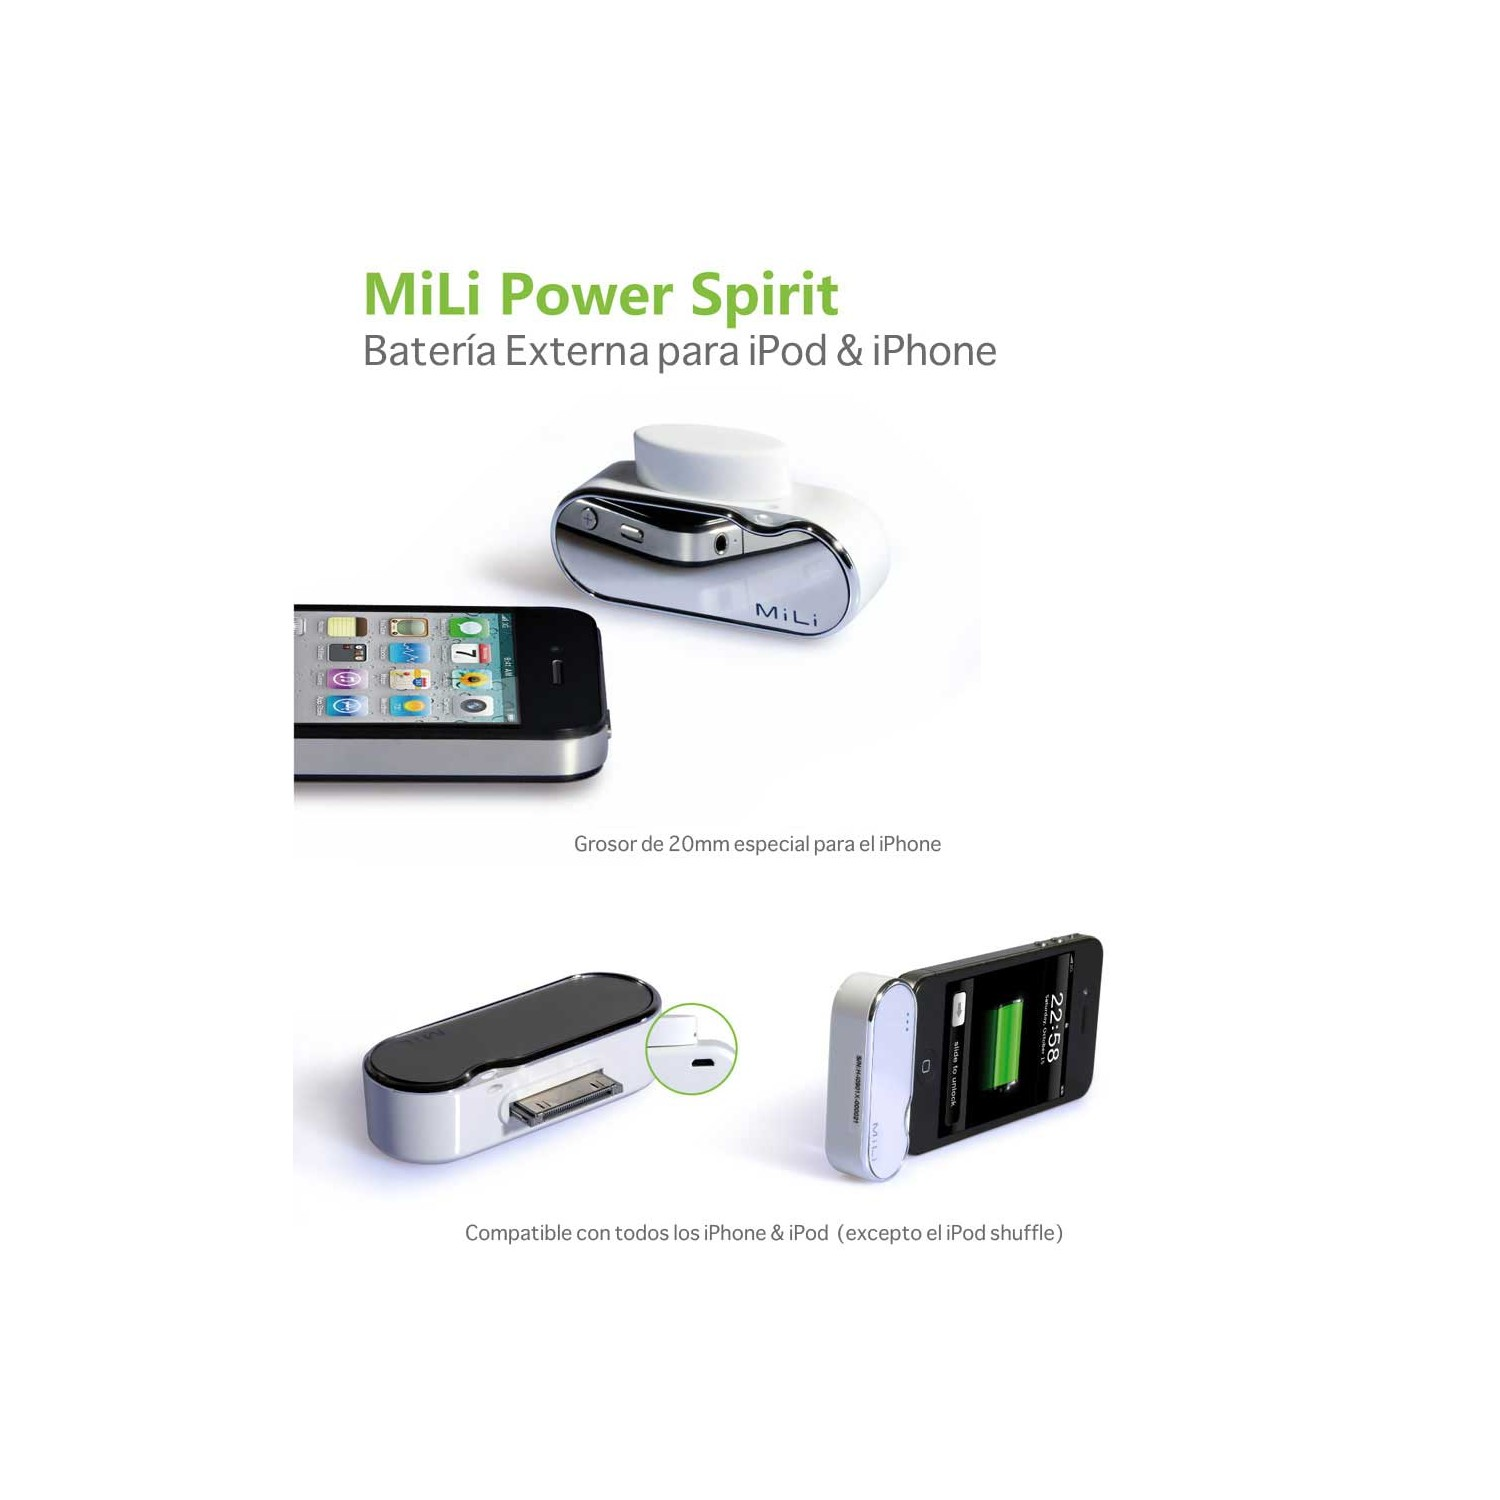 Bateria Auxiliar de Emergencia para iPod iPhone Mili Power Spirit